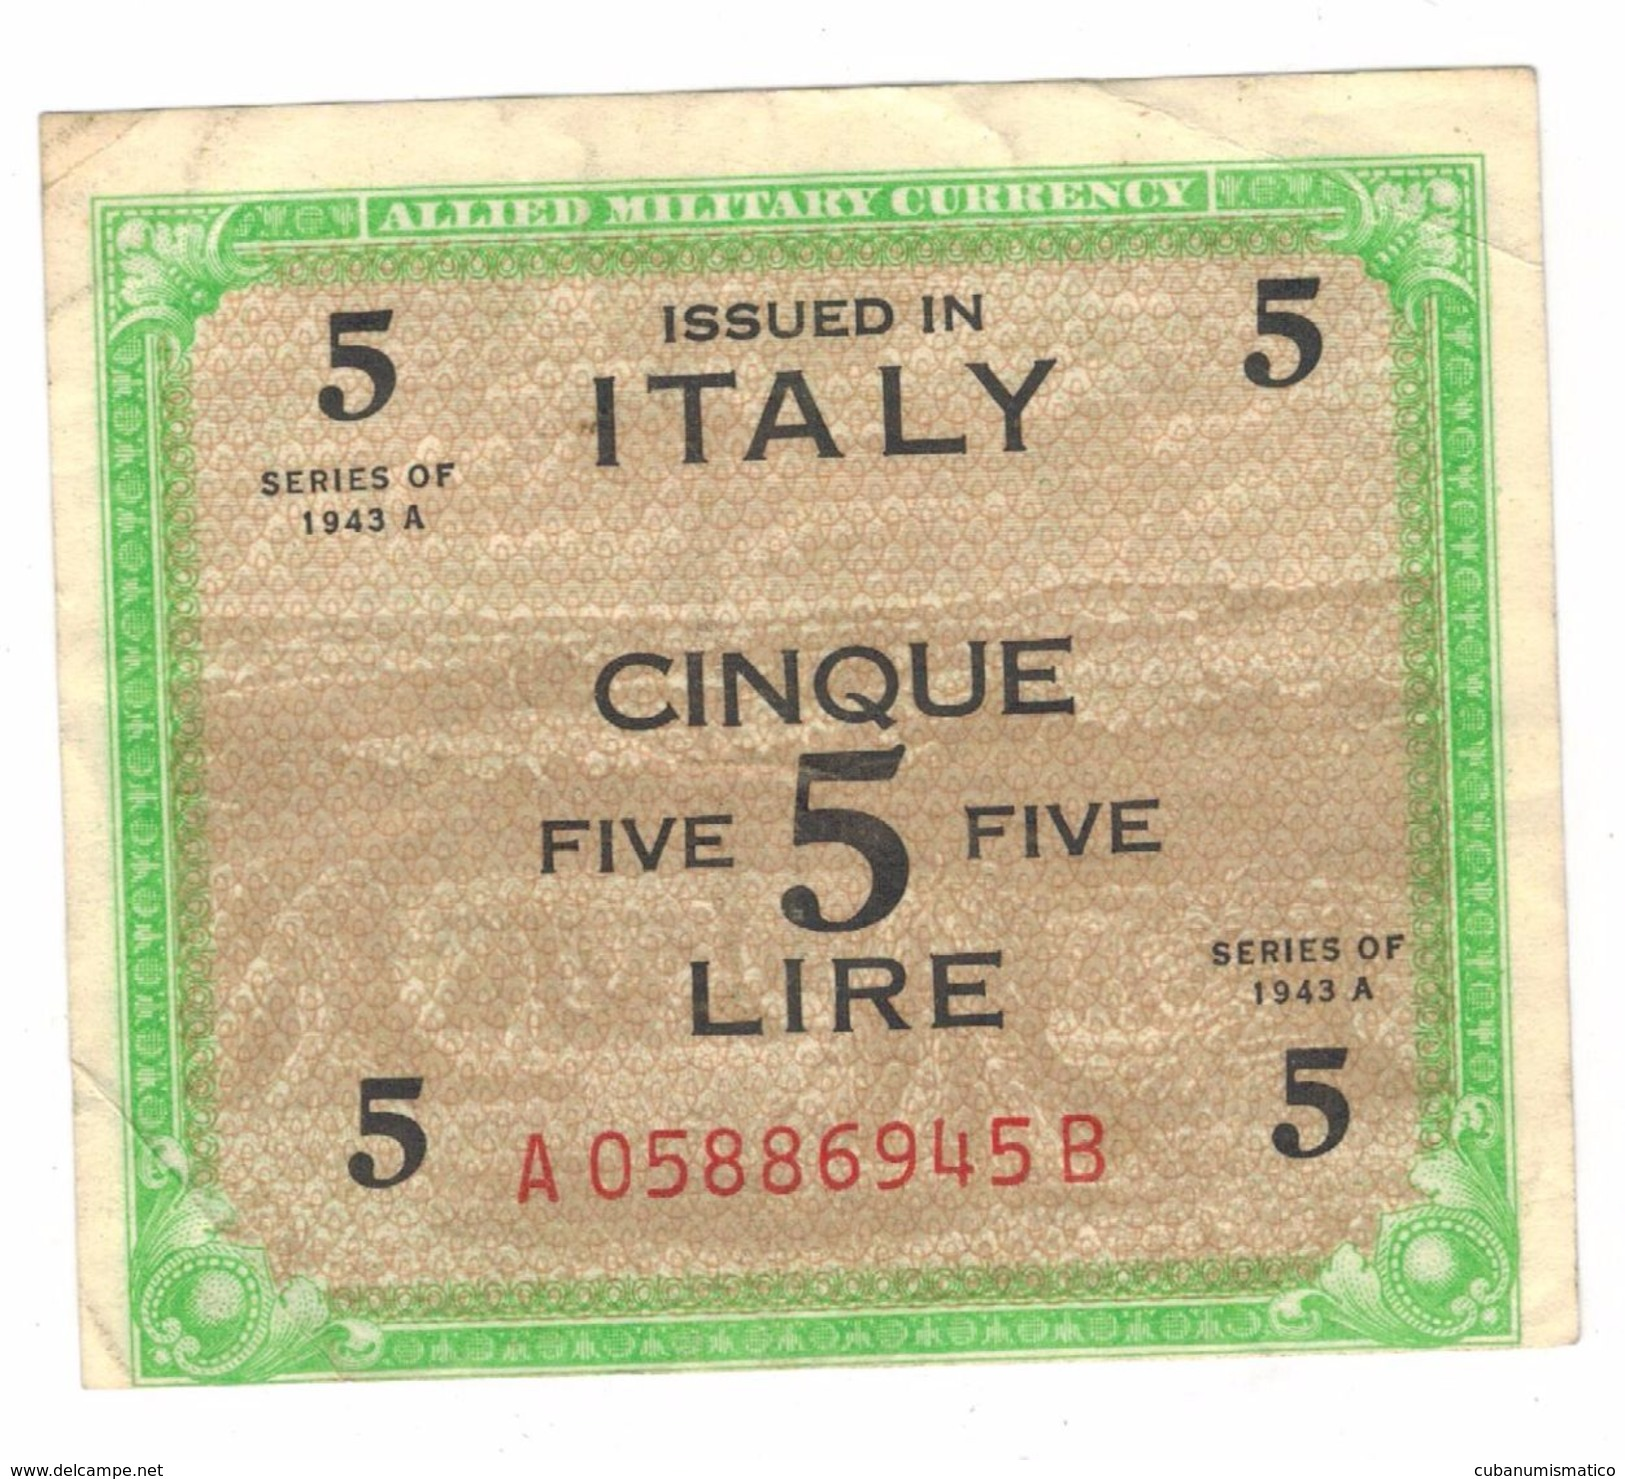 Italy , 5 Lire 1943 A, VF. - [ 3] Militaire Uitgaven